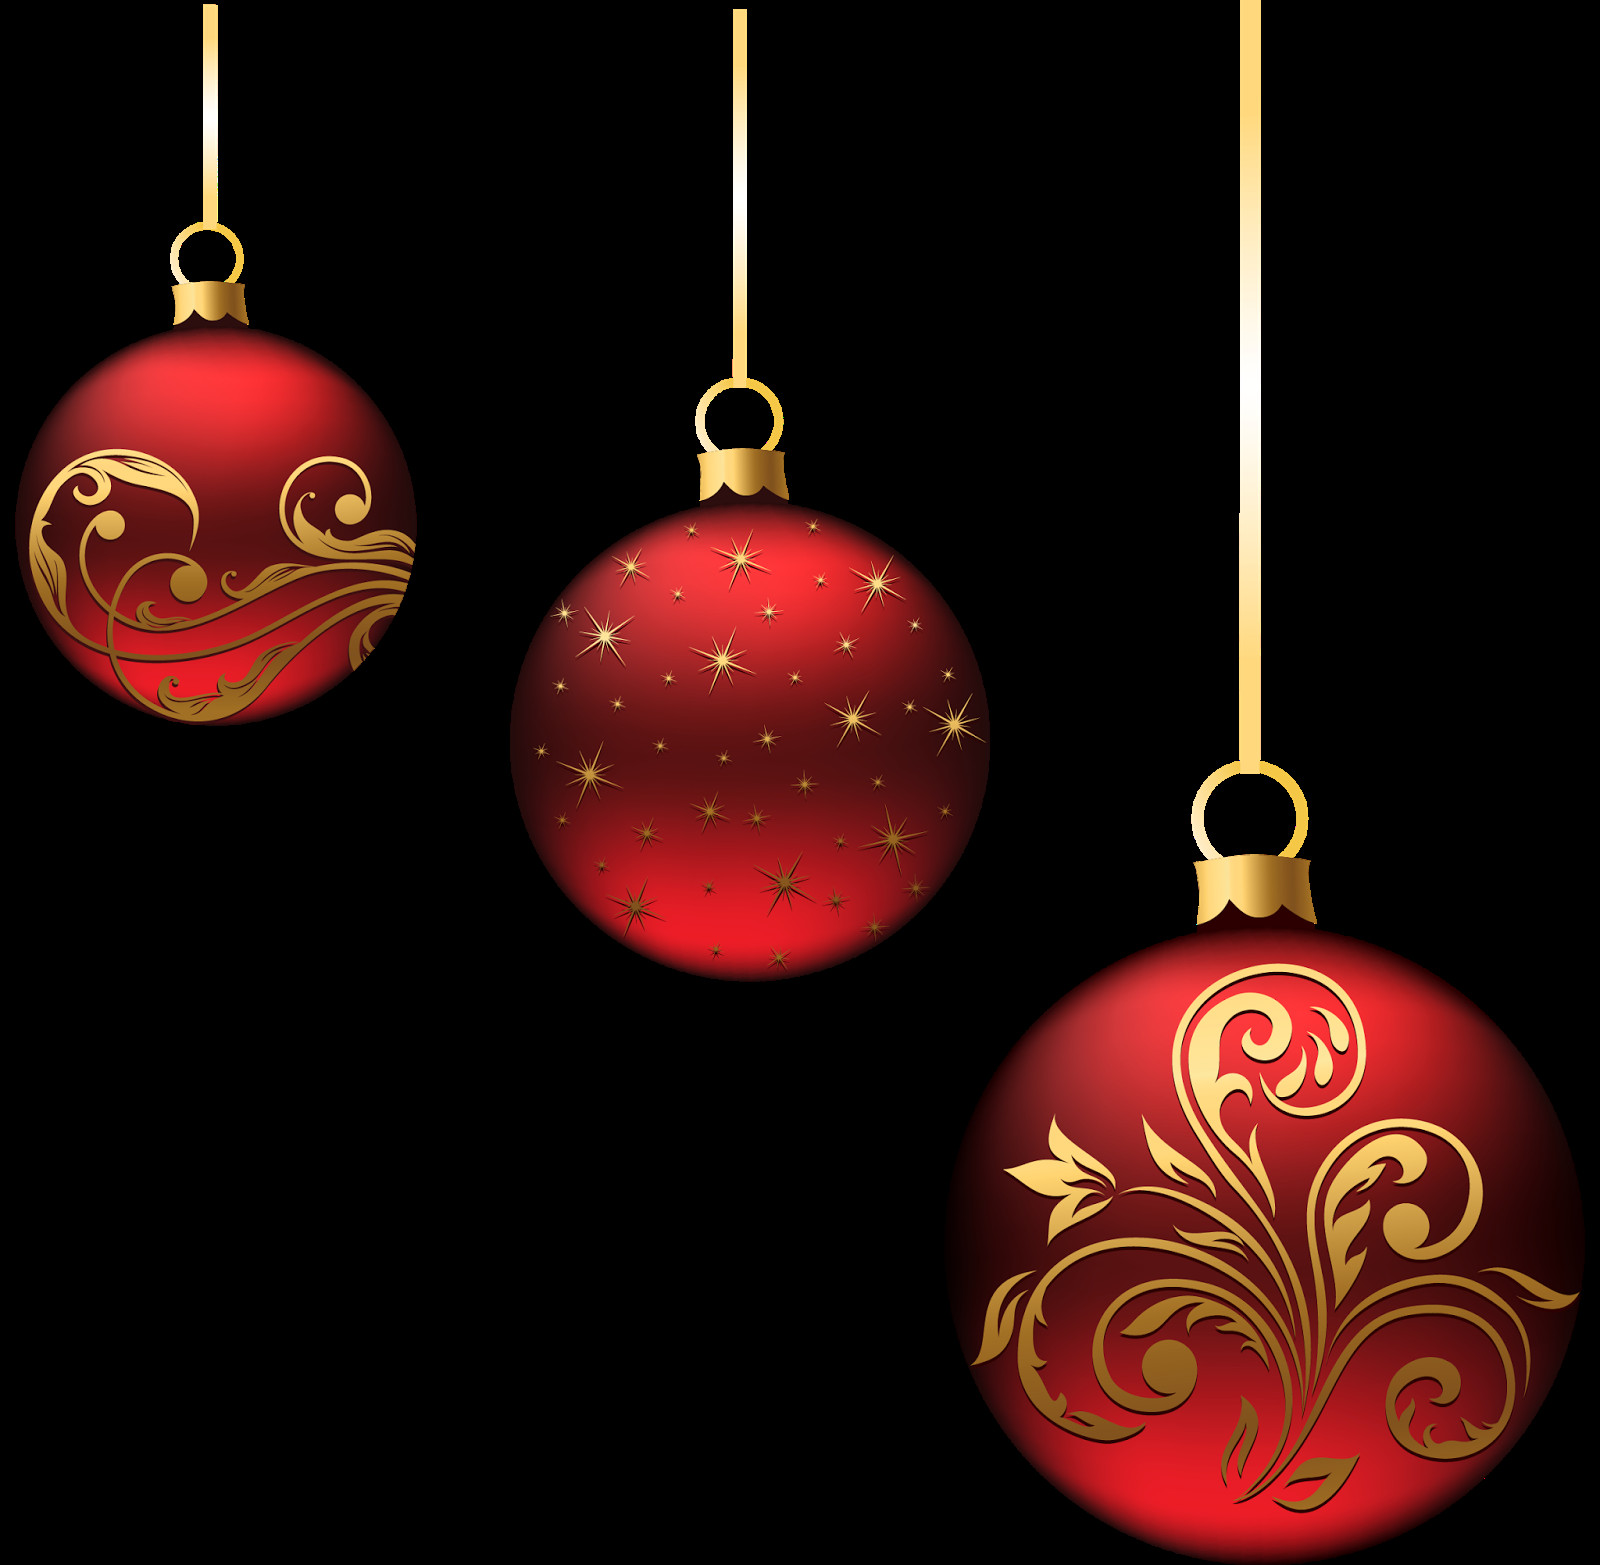 Red Christmas ornaments Elegant Christmas Decorations Of Delightful 47 Photos Red Christmas ornaments